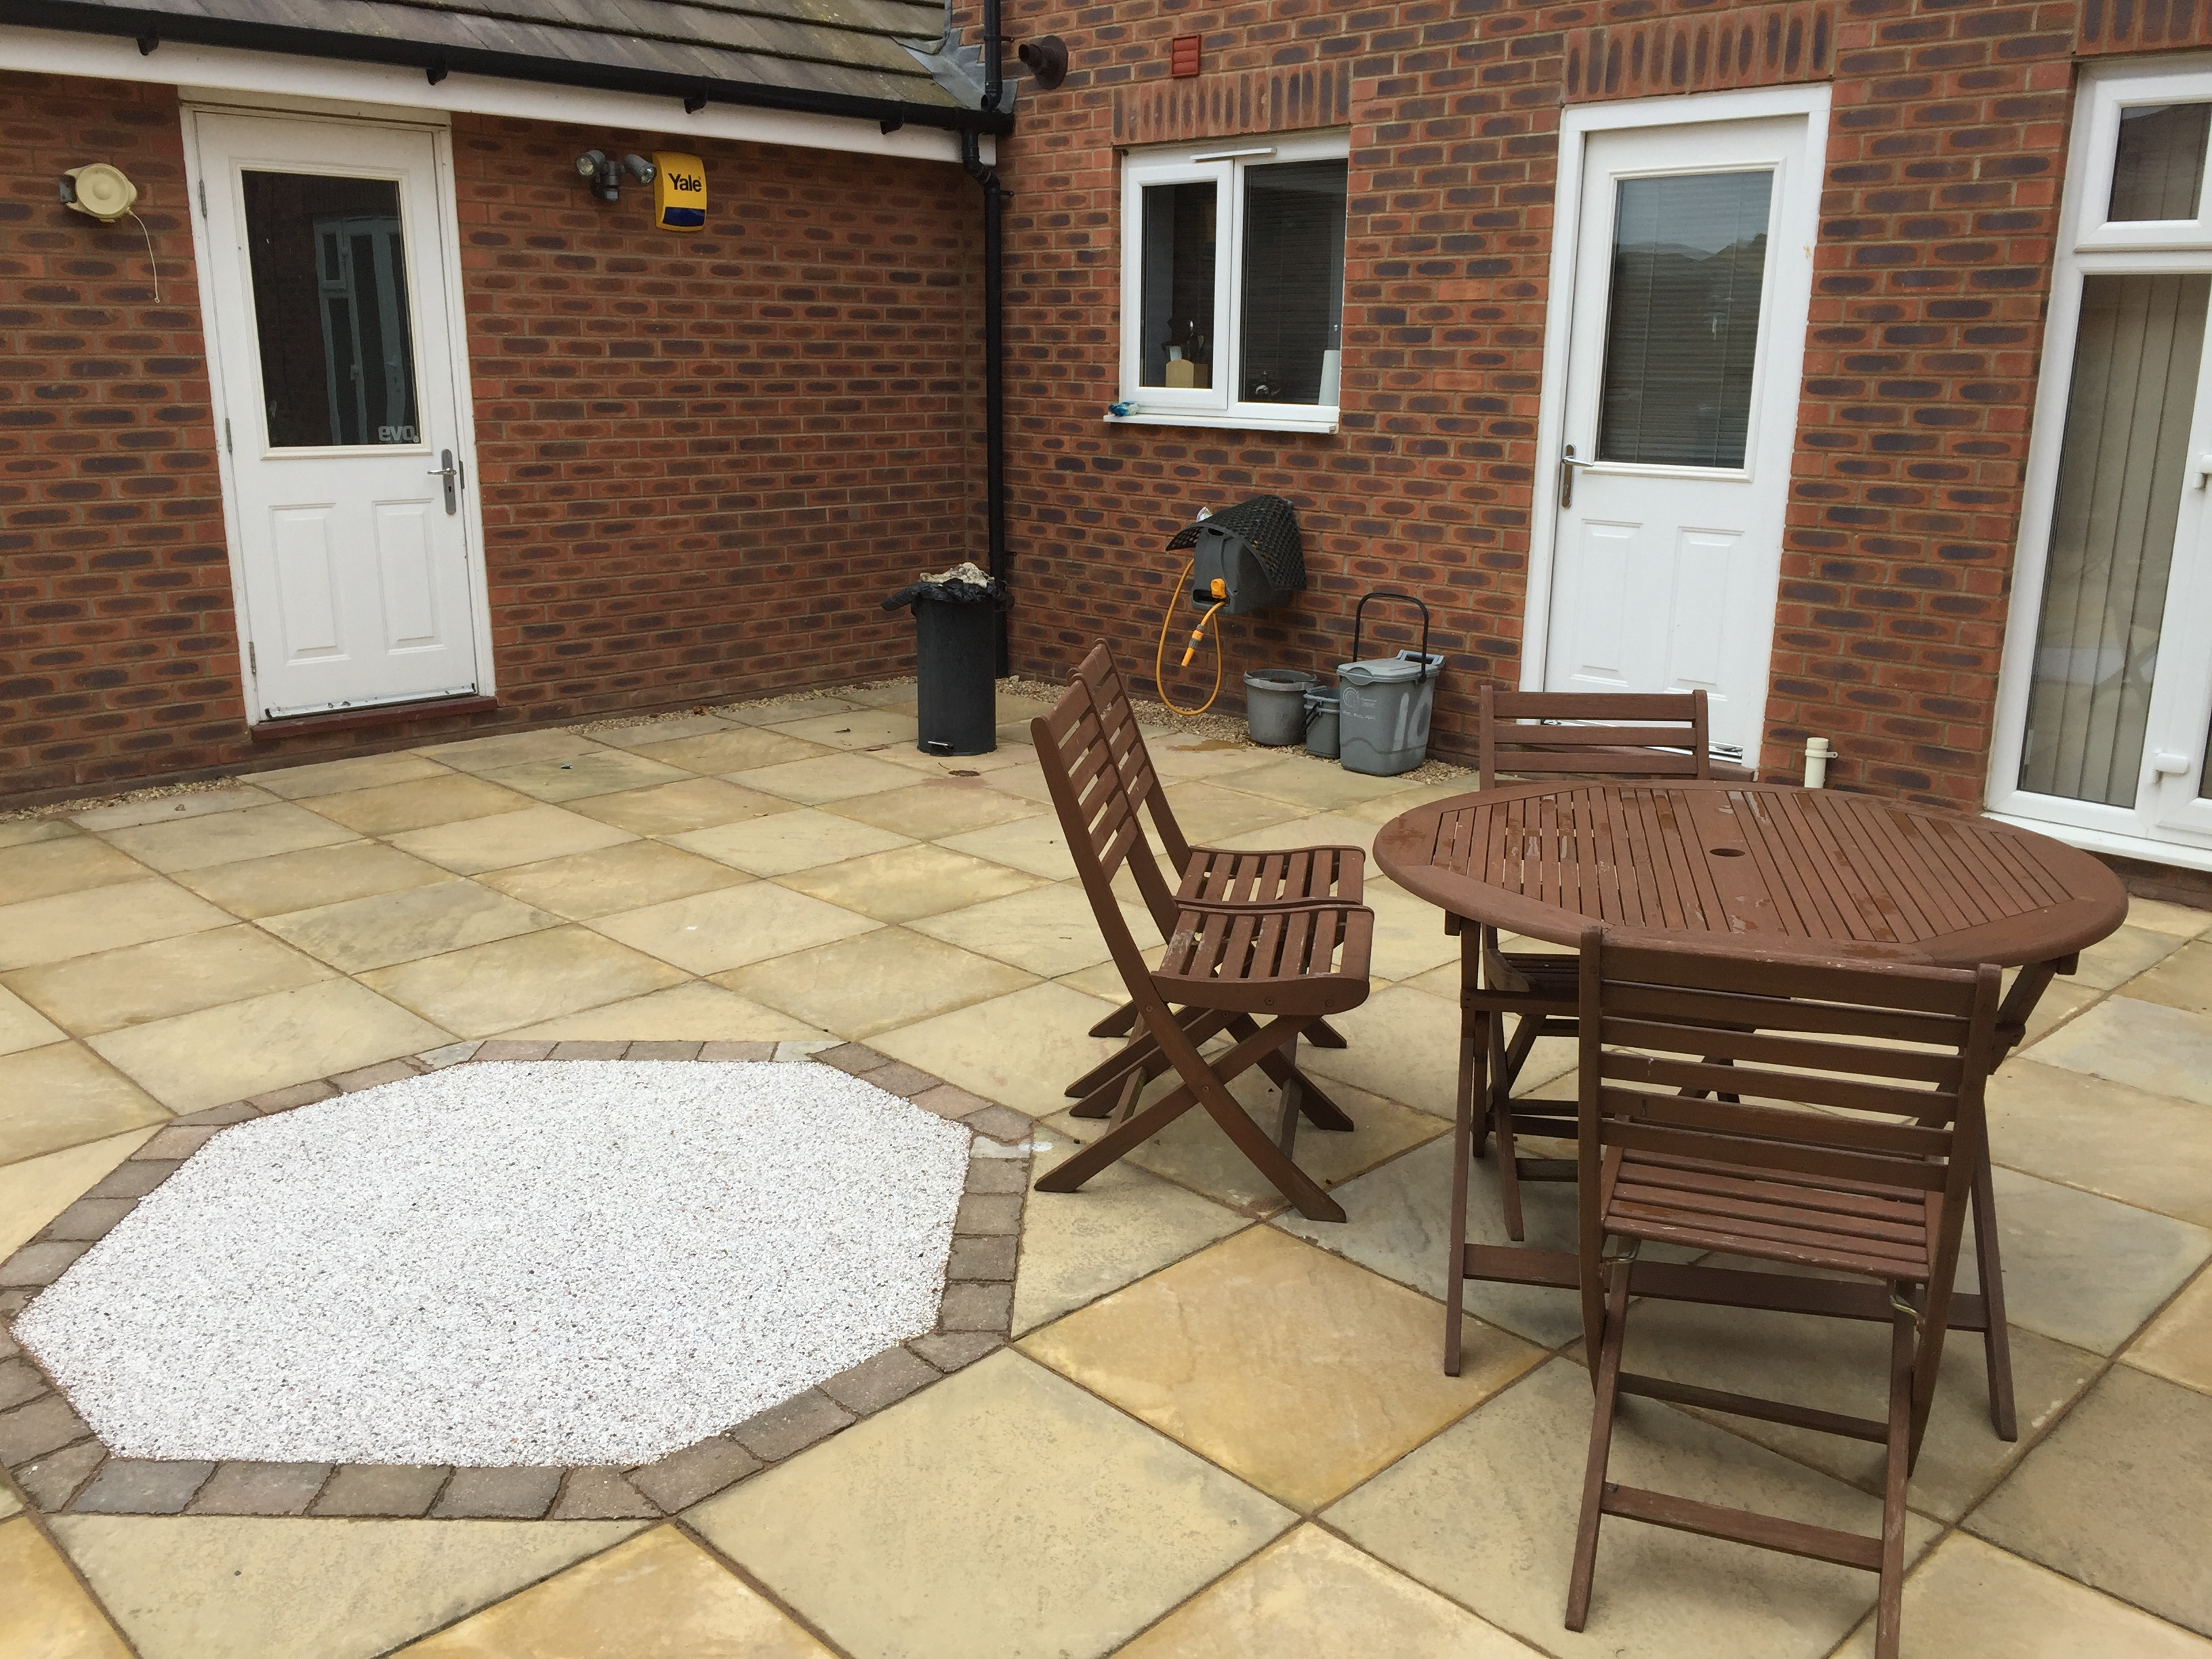 Resin Decoration in Patio Peterborough